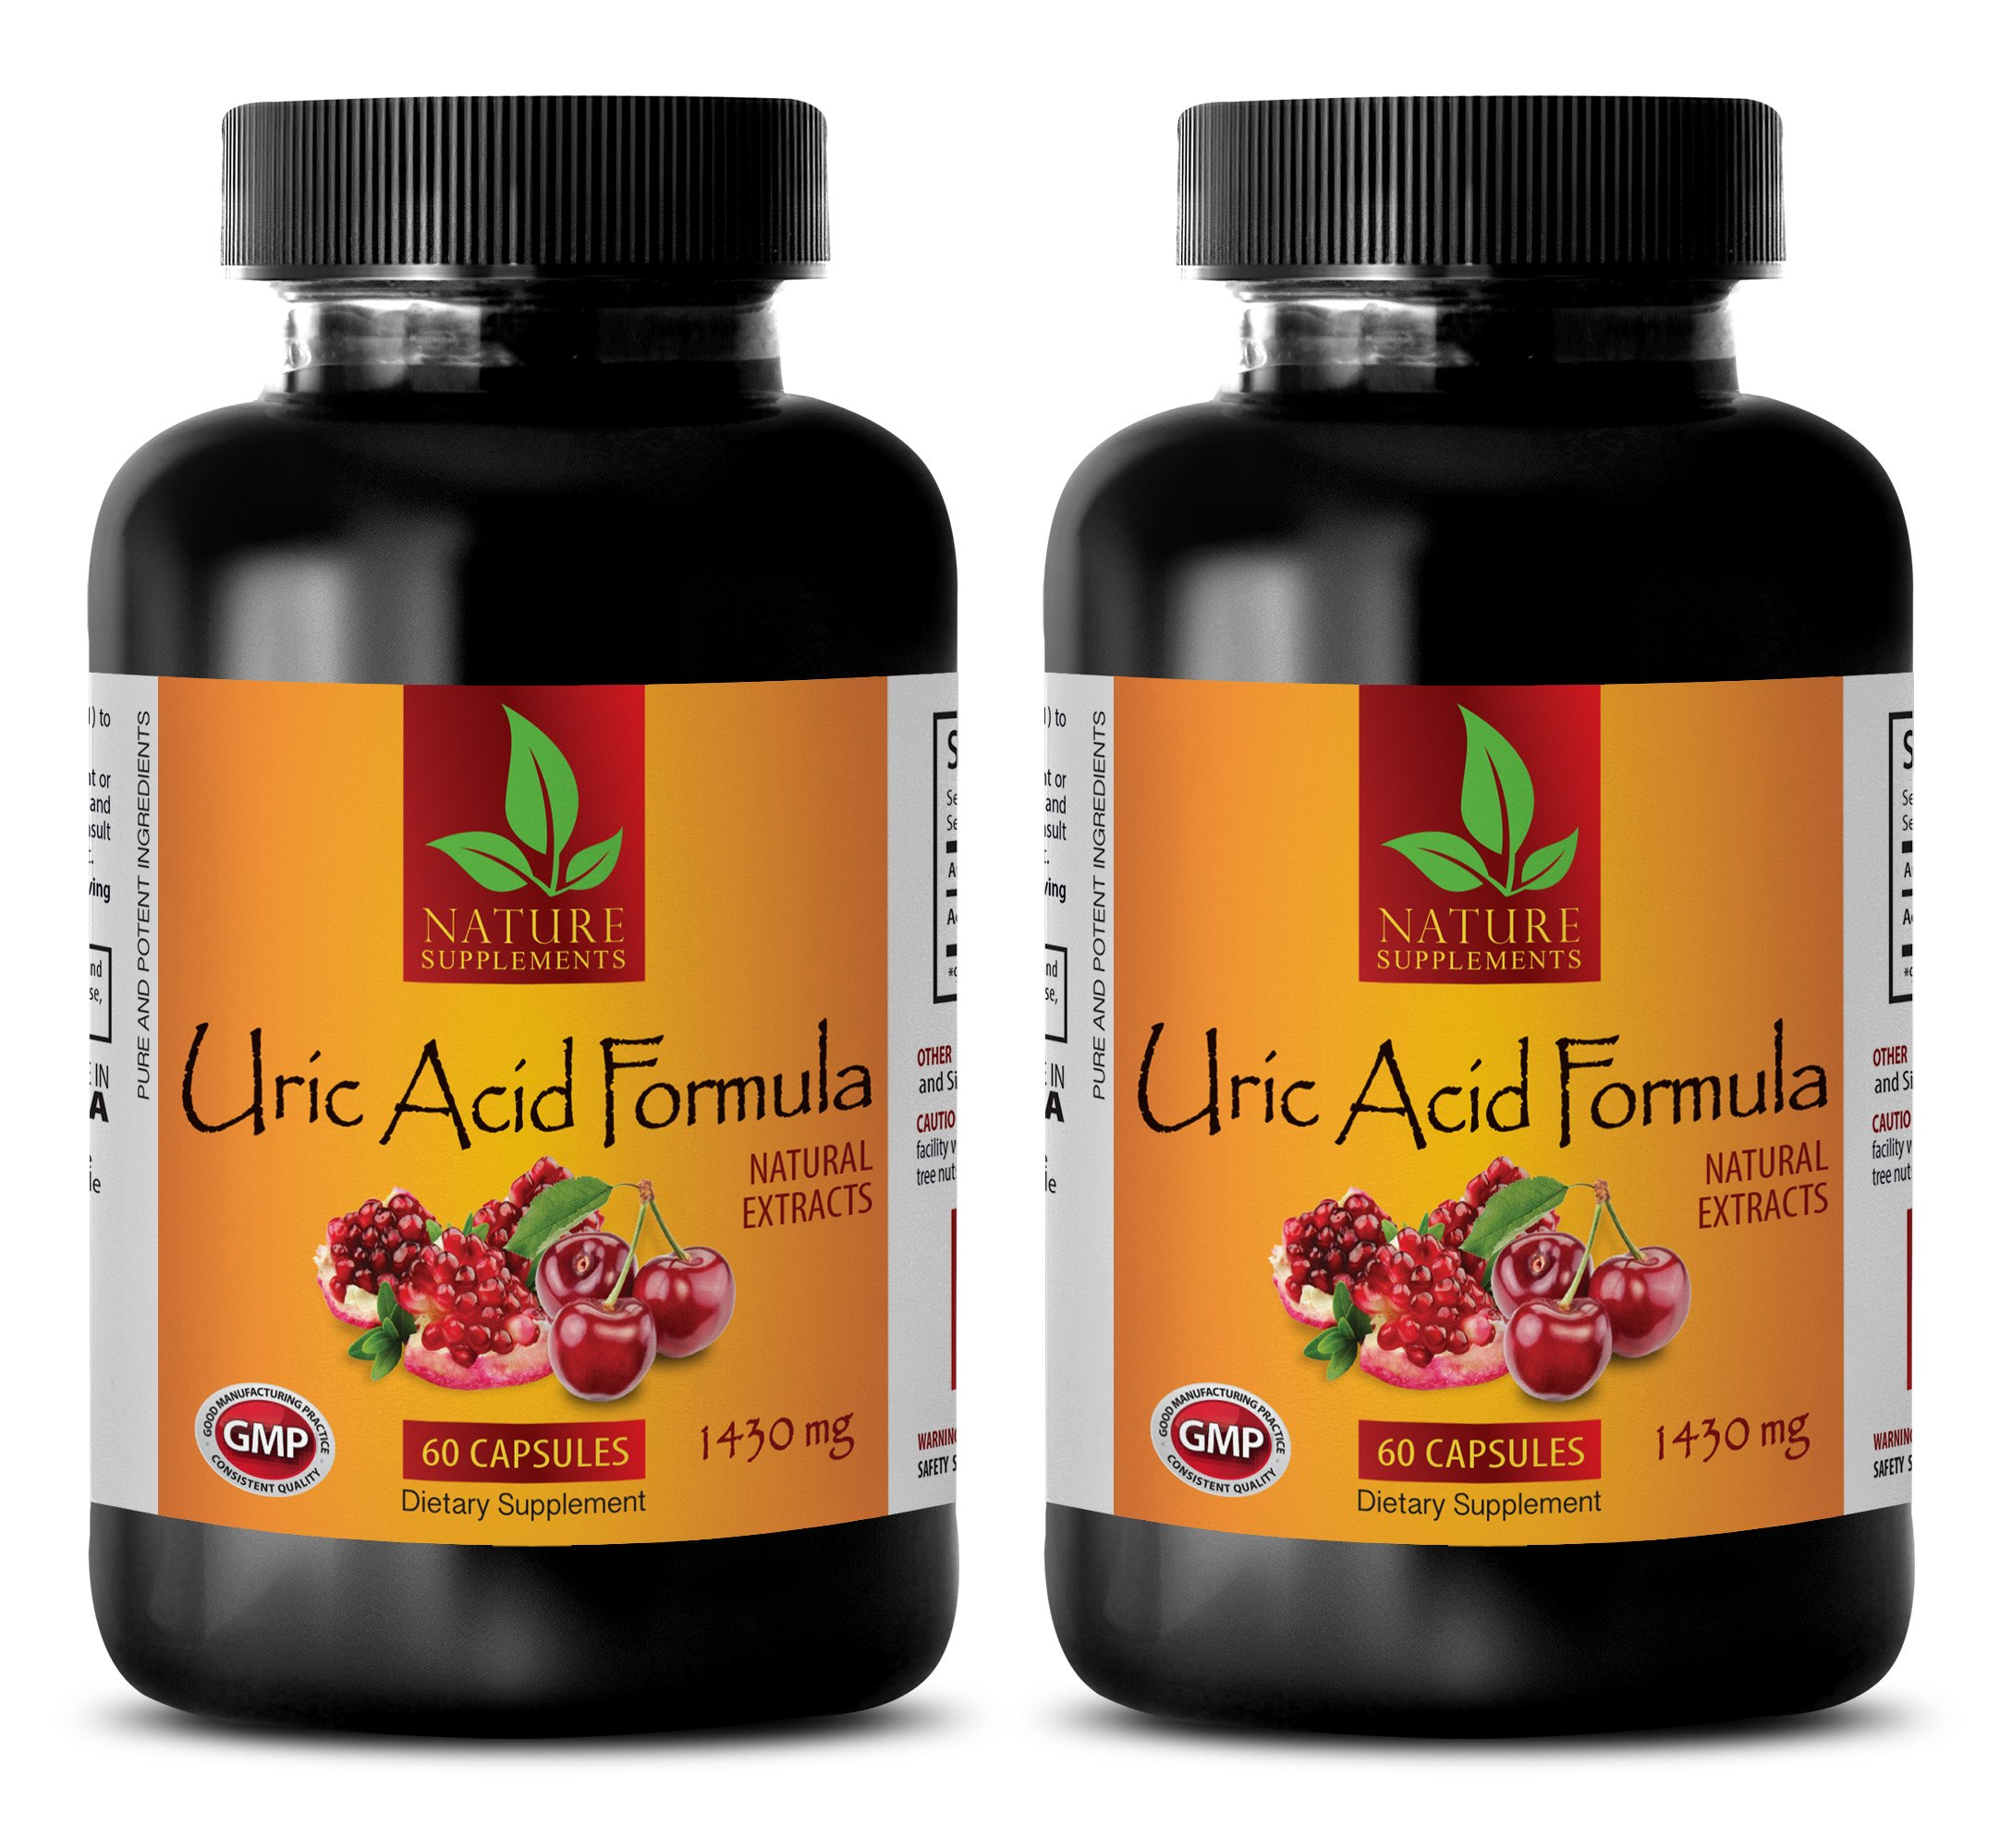 Weight Loss Products - URIC Acid Formula - Natural EXTRACTS - Kidney Support for Men - 2 Bottles (120 Capsules)